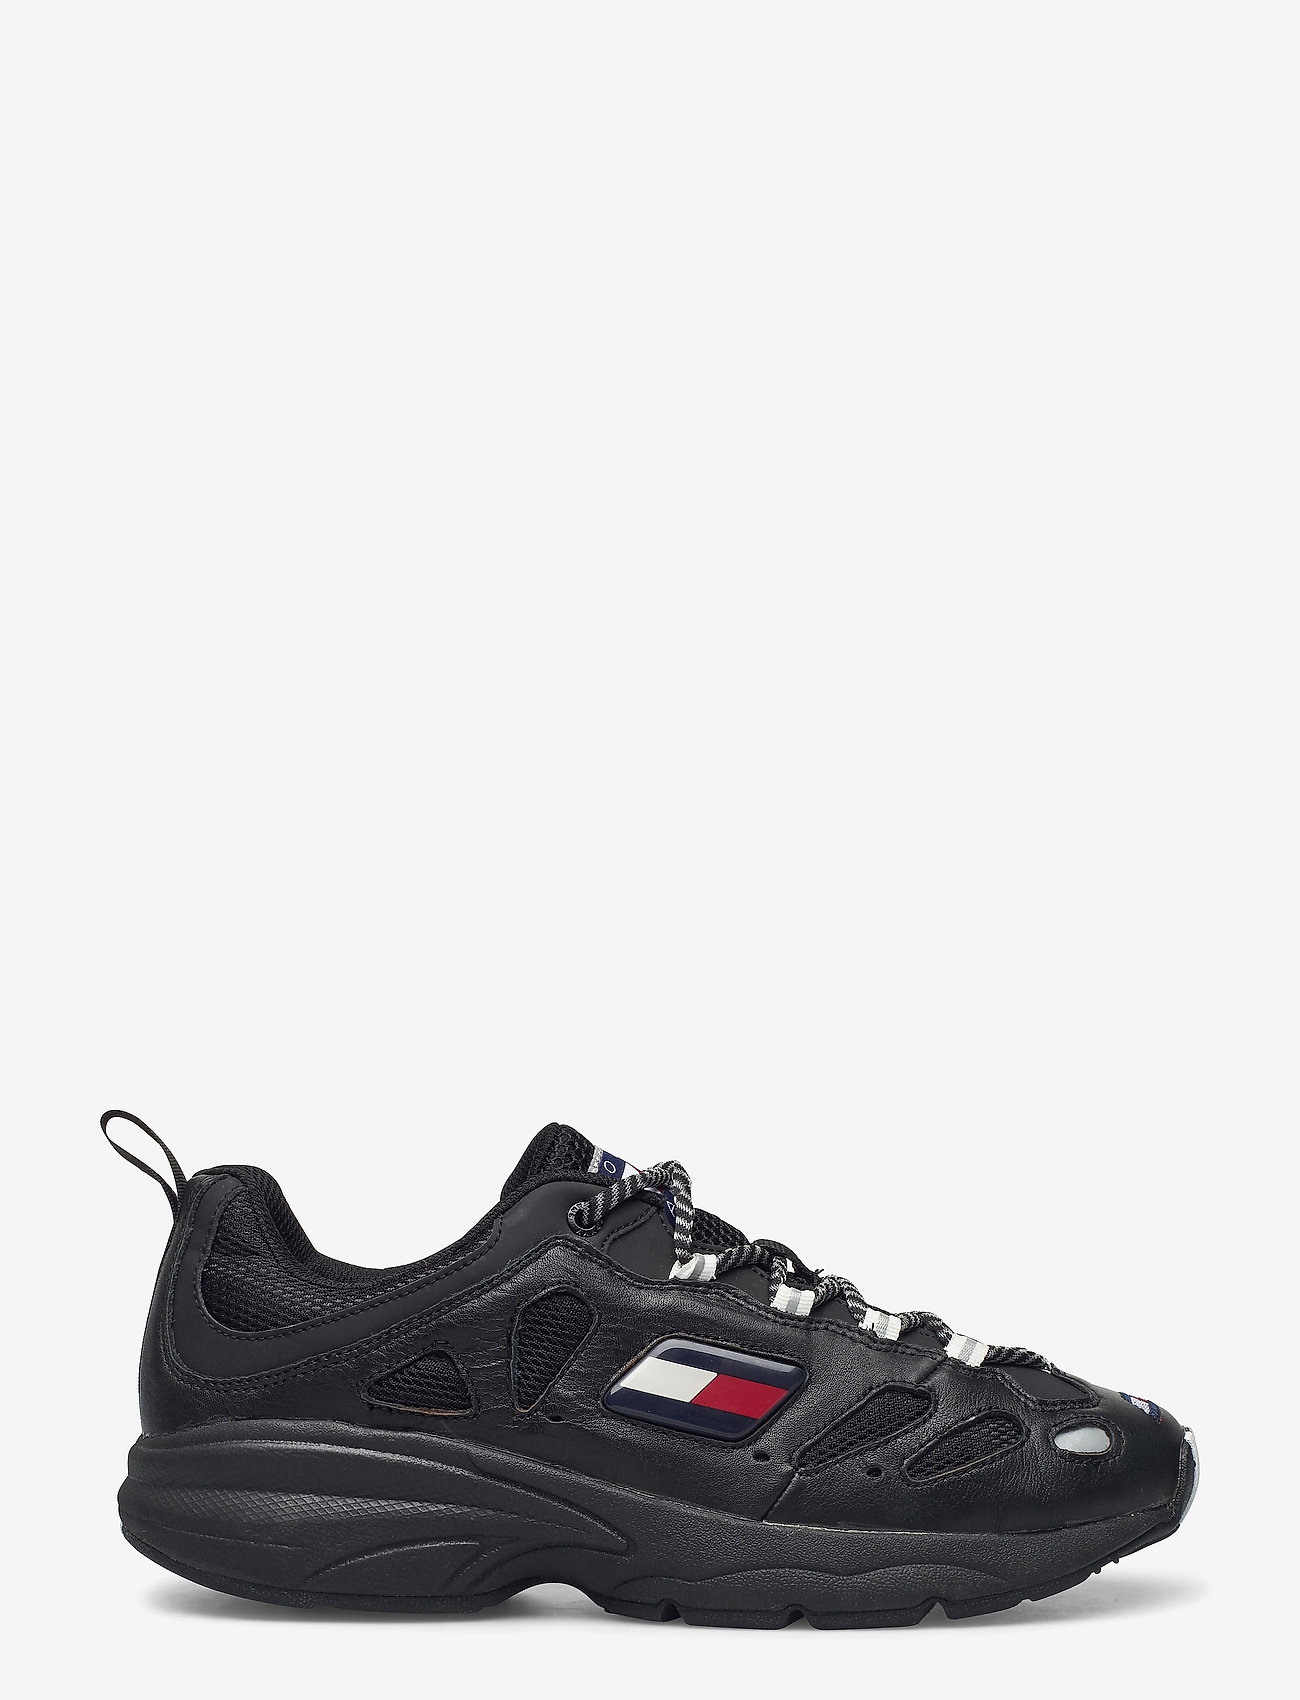 Tommy Hilfiger - HERITAGE RETRO TOMMY - low tops - black - 1